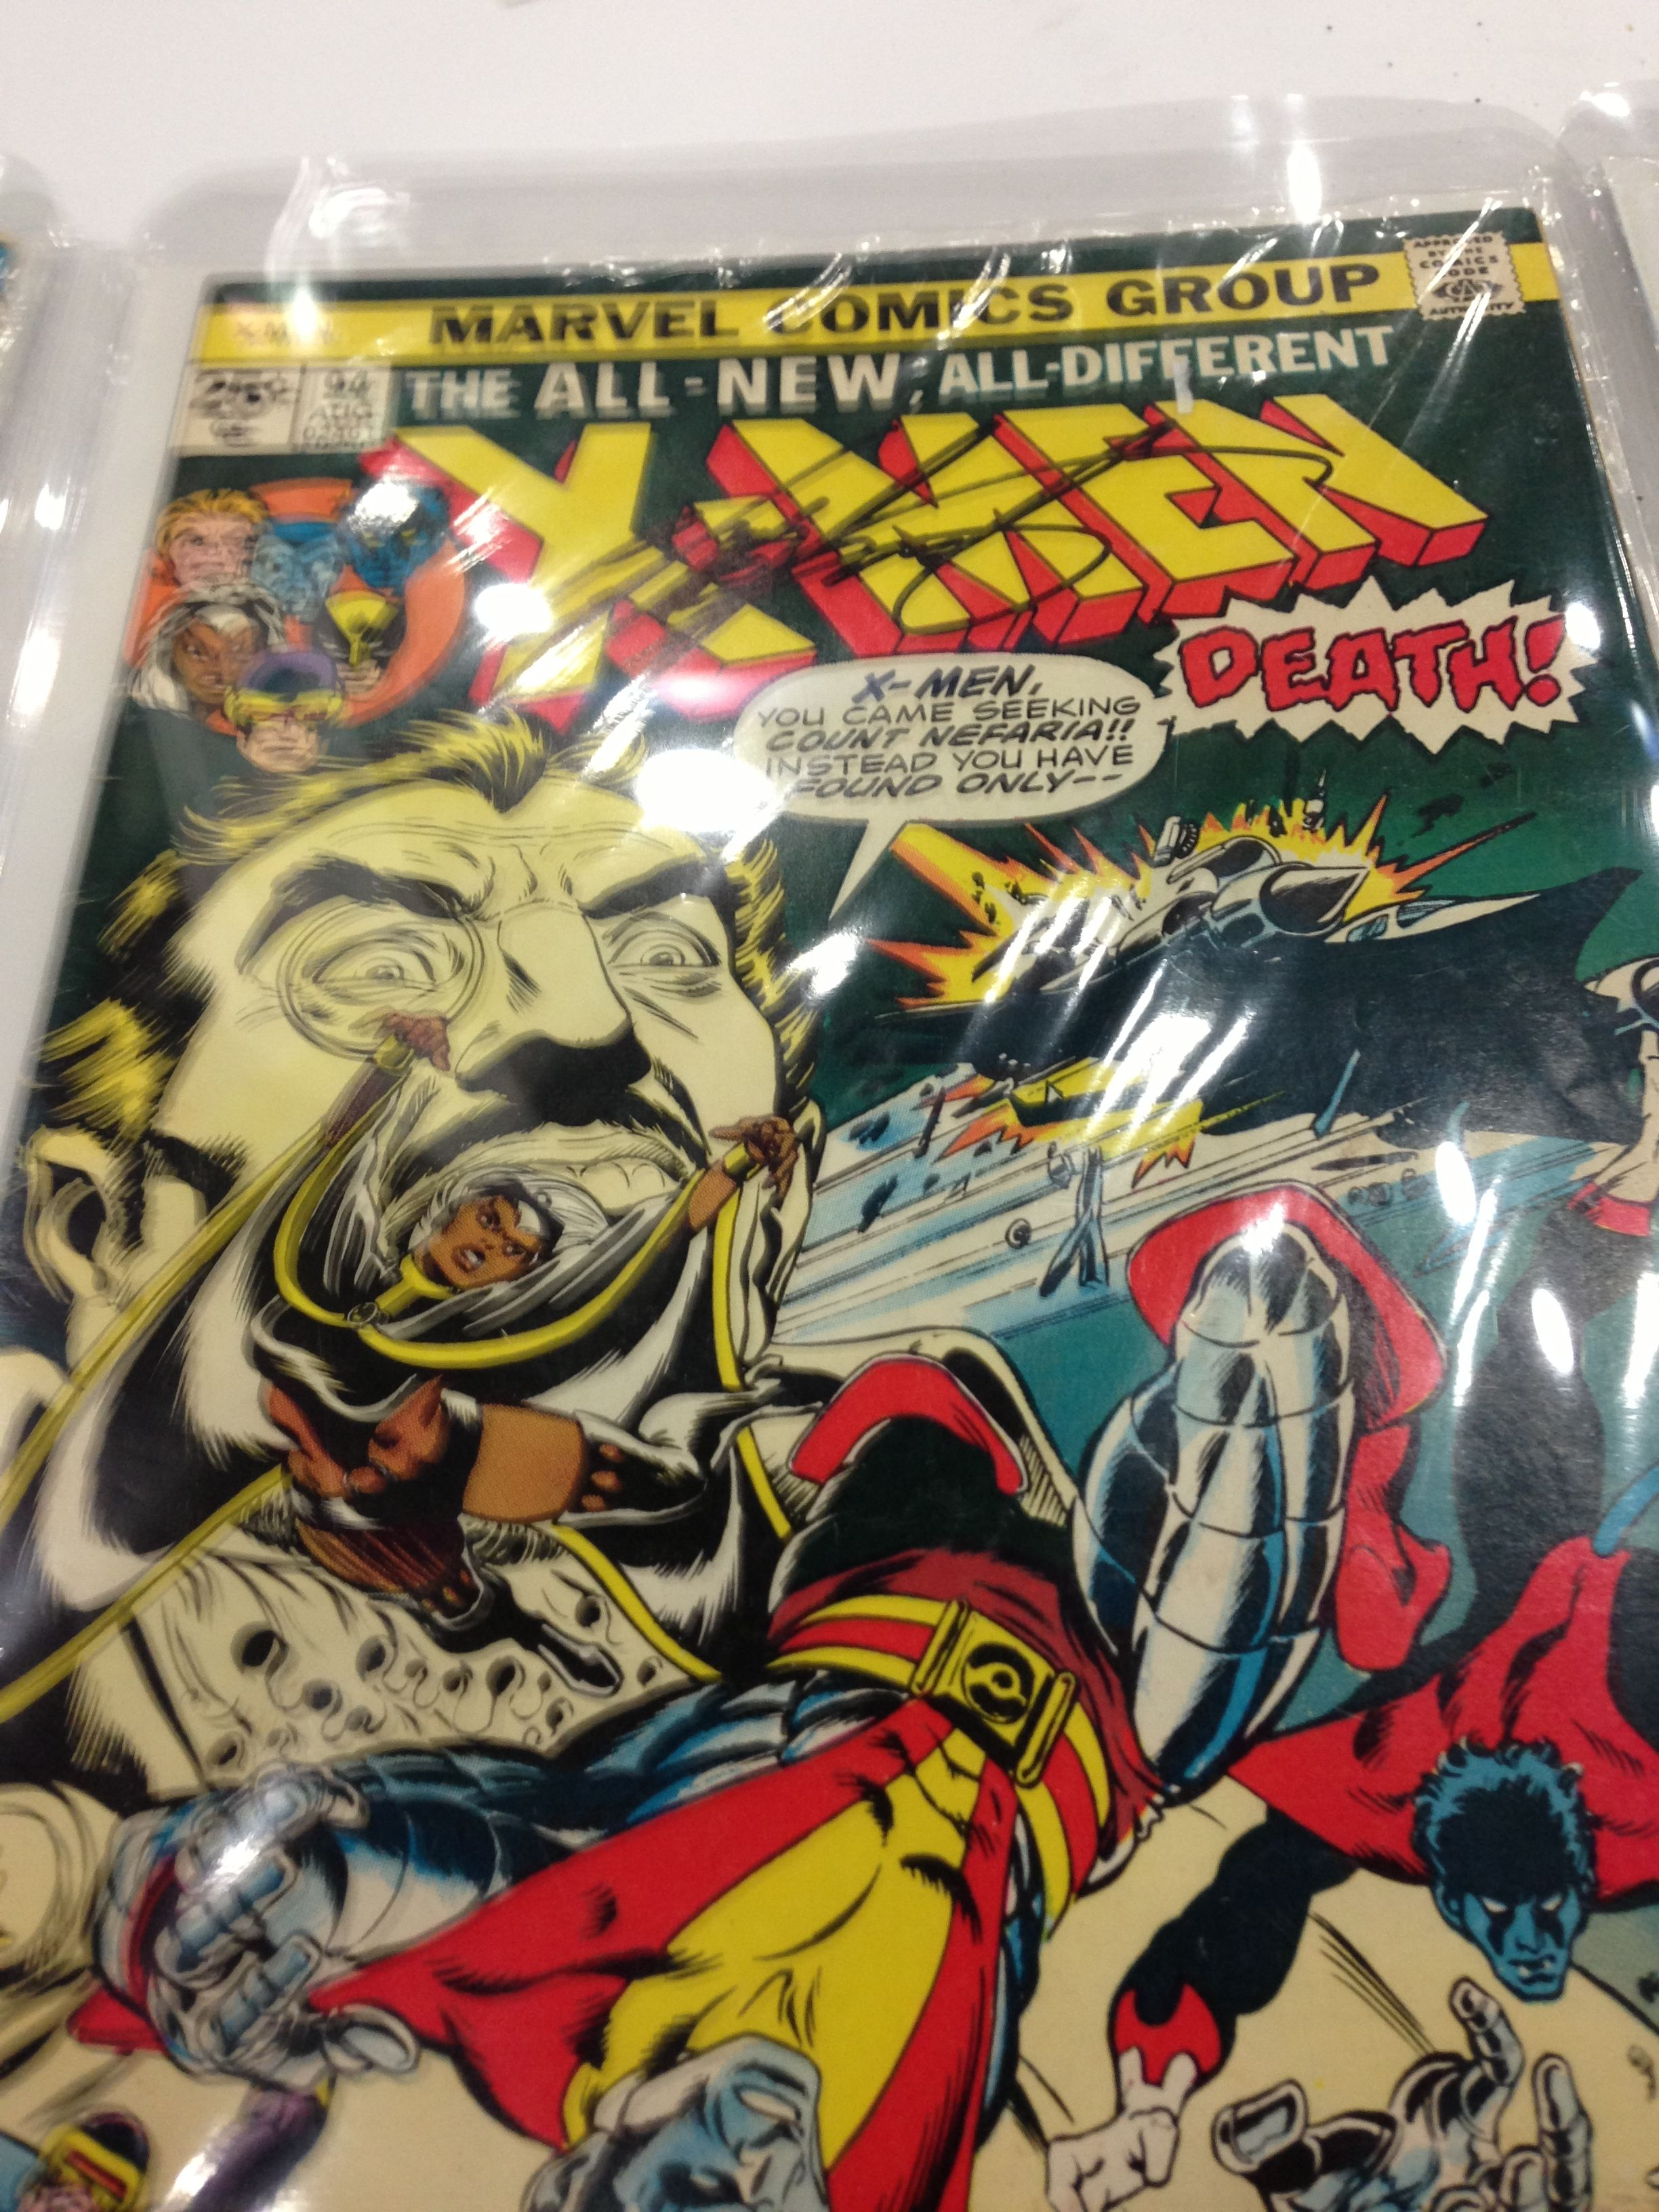 Uncanny X Men 94 Signed By Writer Chris Claremont 1st Issue With The New X Men Team Comic Book Cover Claremont Book Cover